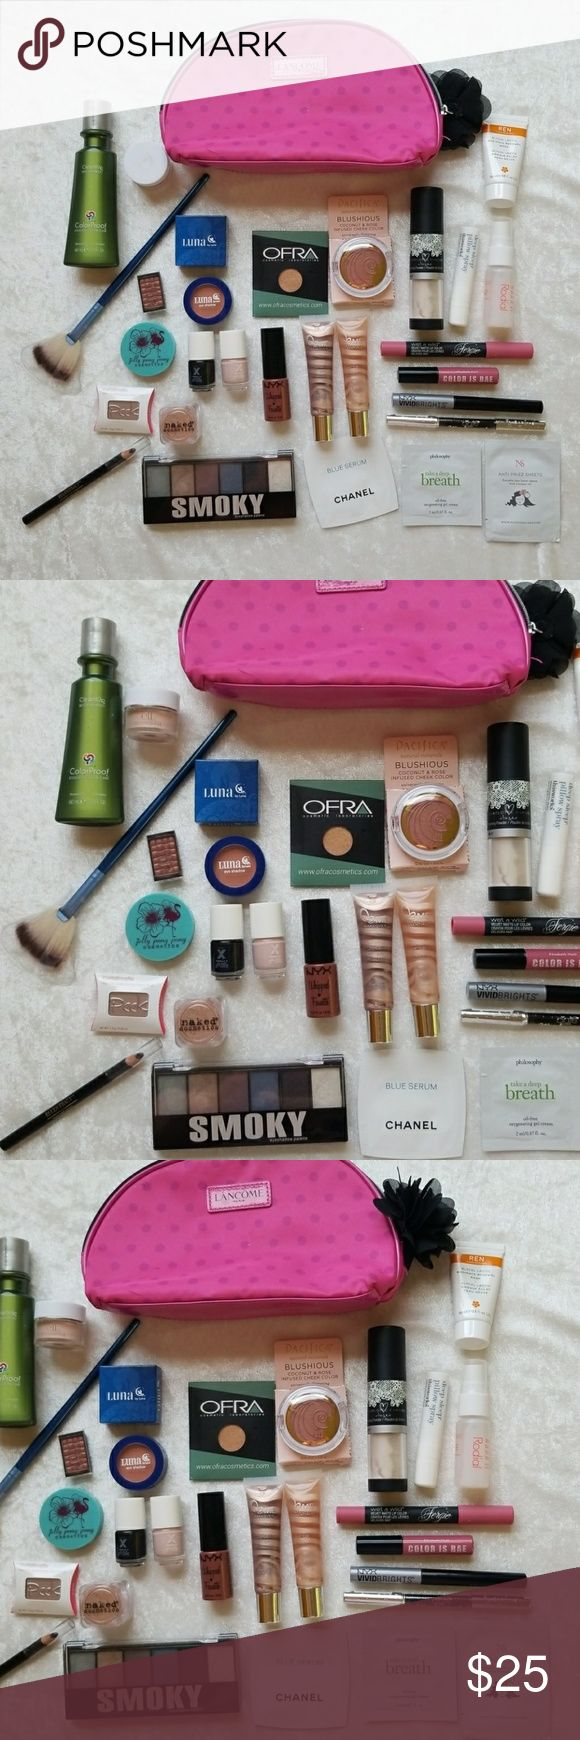 SALE*Beauty Bundle with Free Lancome Make up Bag -->Never used/opened items: OFRA Gold rush eyeshadow, NYC Whipped Lip/cheek souffle, Ciate London Kohl liner, Pacifica blush, Luna eyeshadow,  Jelly PongPong dual eyeshadow  , make over essentials lip gloss(2 pcs), fan brush -->Used once to swatch: Elizabeth Moth Lip Lacquer, NYX Vivid Bright eyeliner, Naked Cosmetics Eyeshadow, Peek Metallimate Cream blush, DOUCCE eyeshadow, Rodial toner, deep sleep pillow spray, Doll face nail polish (2 pcs)…